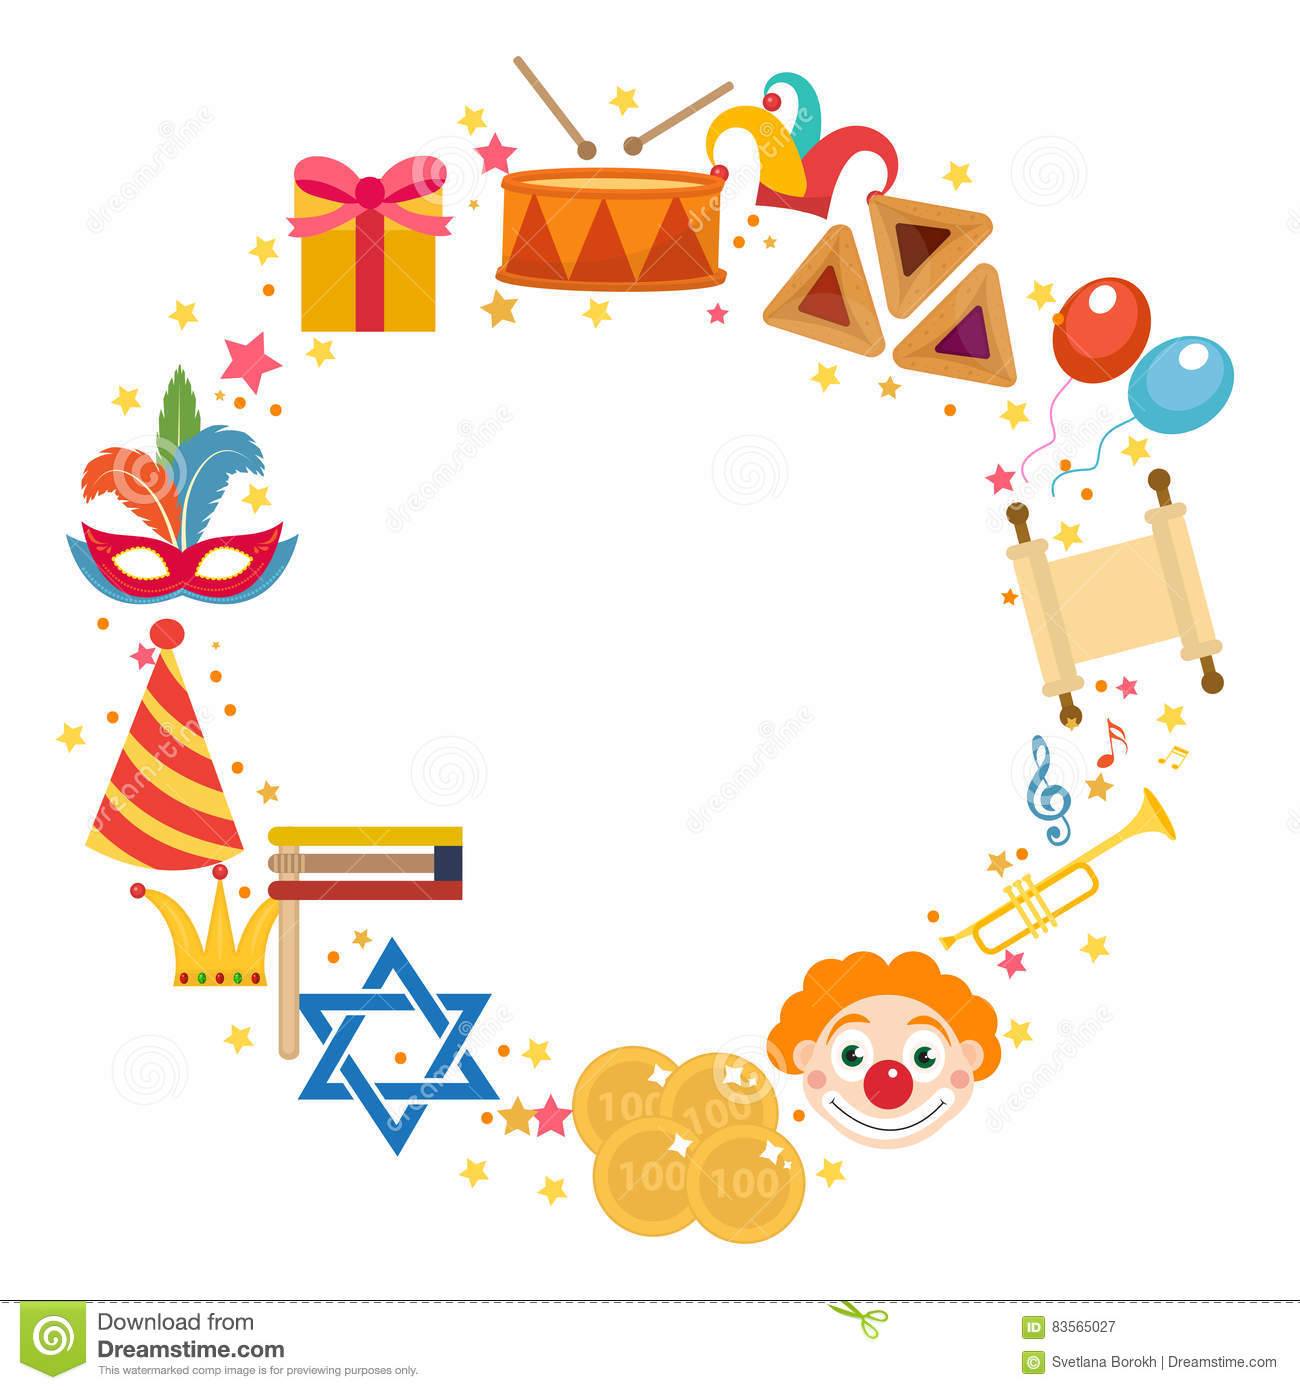 purim frame template with space for text on white background rh dreamstime com